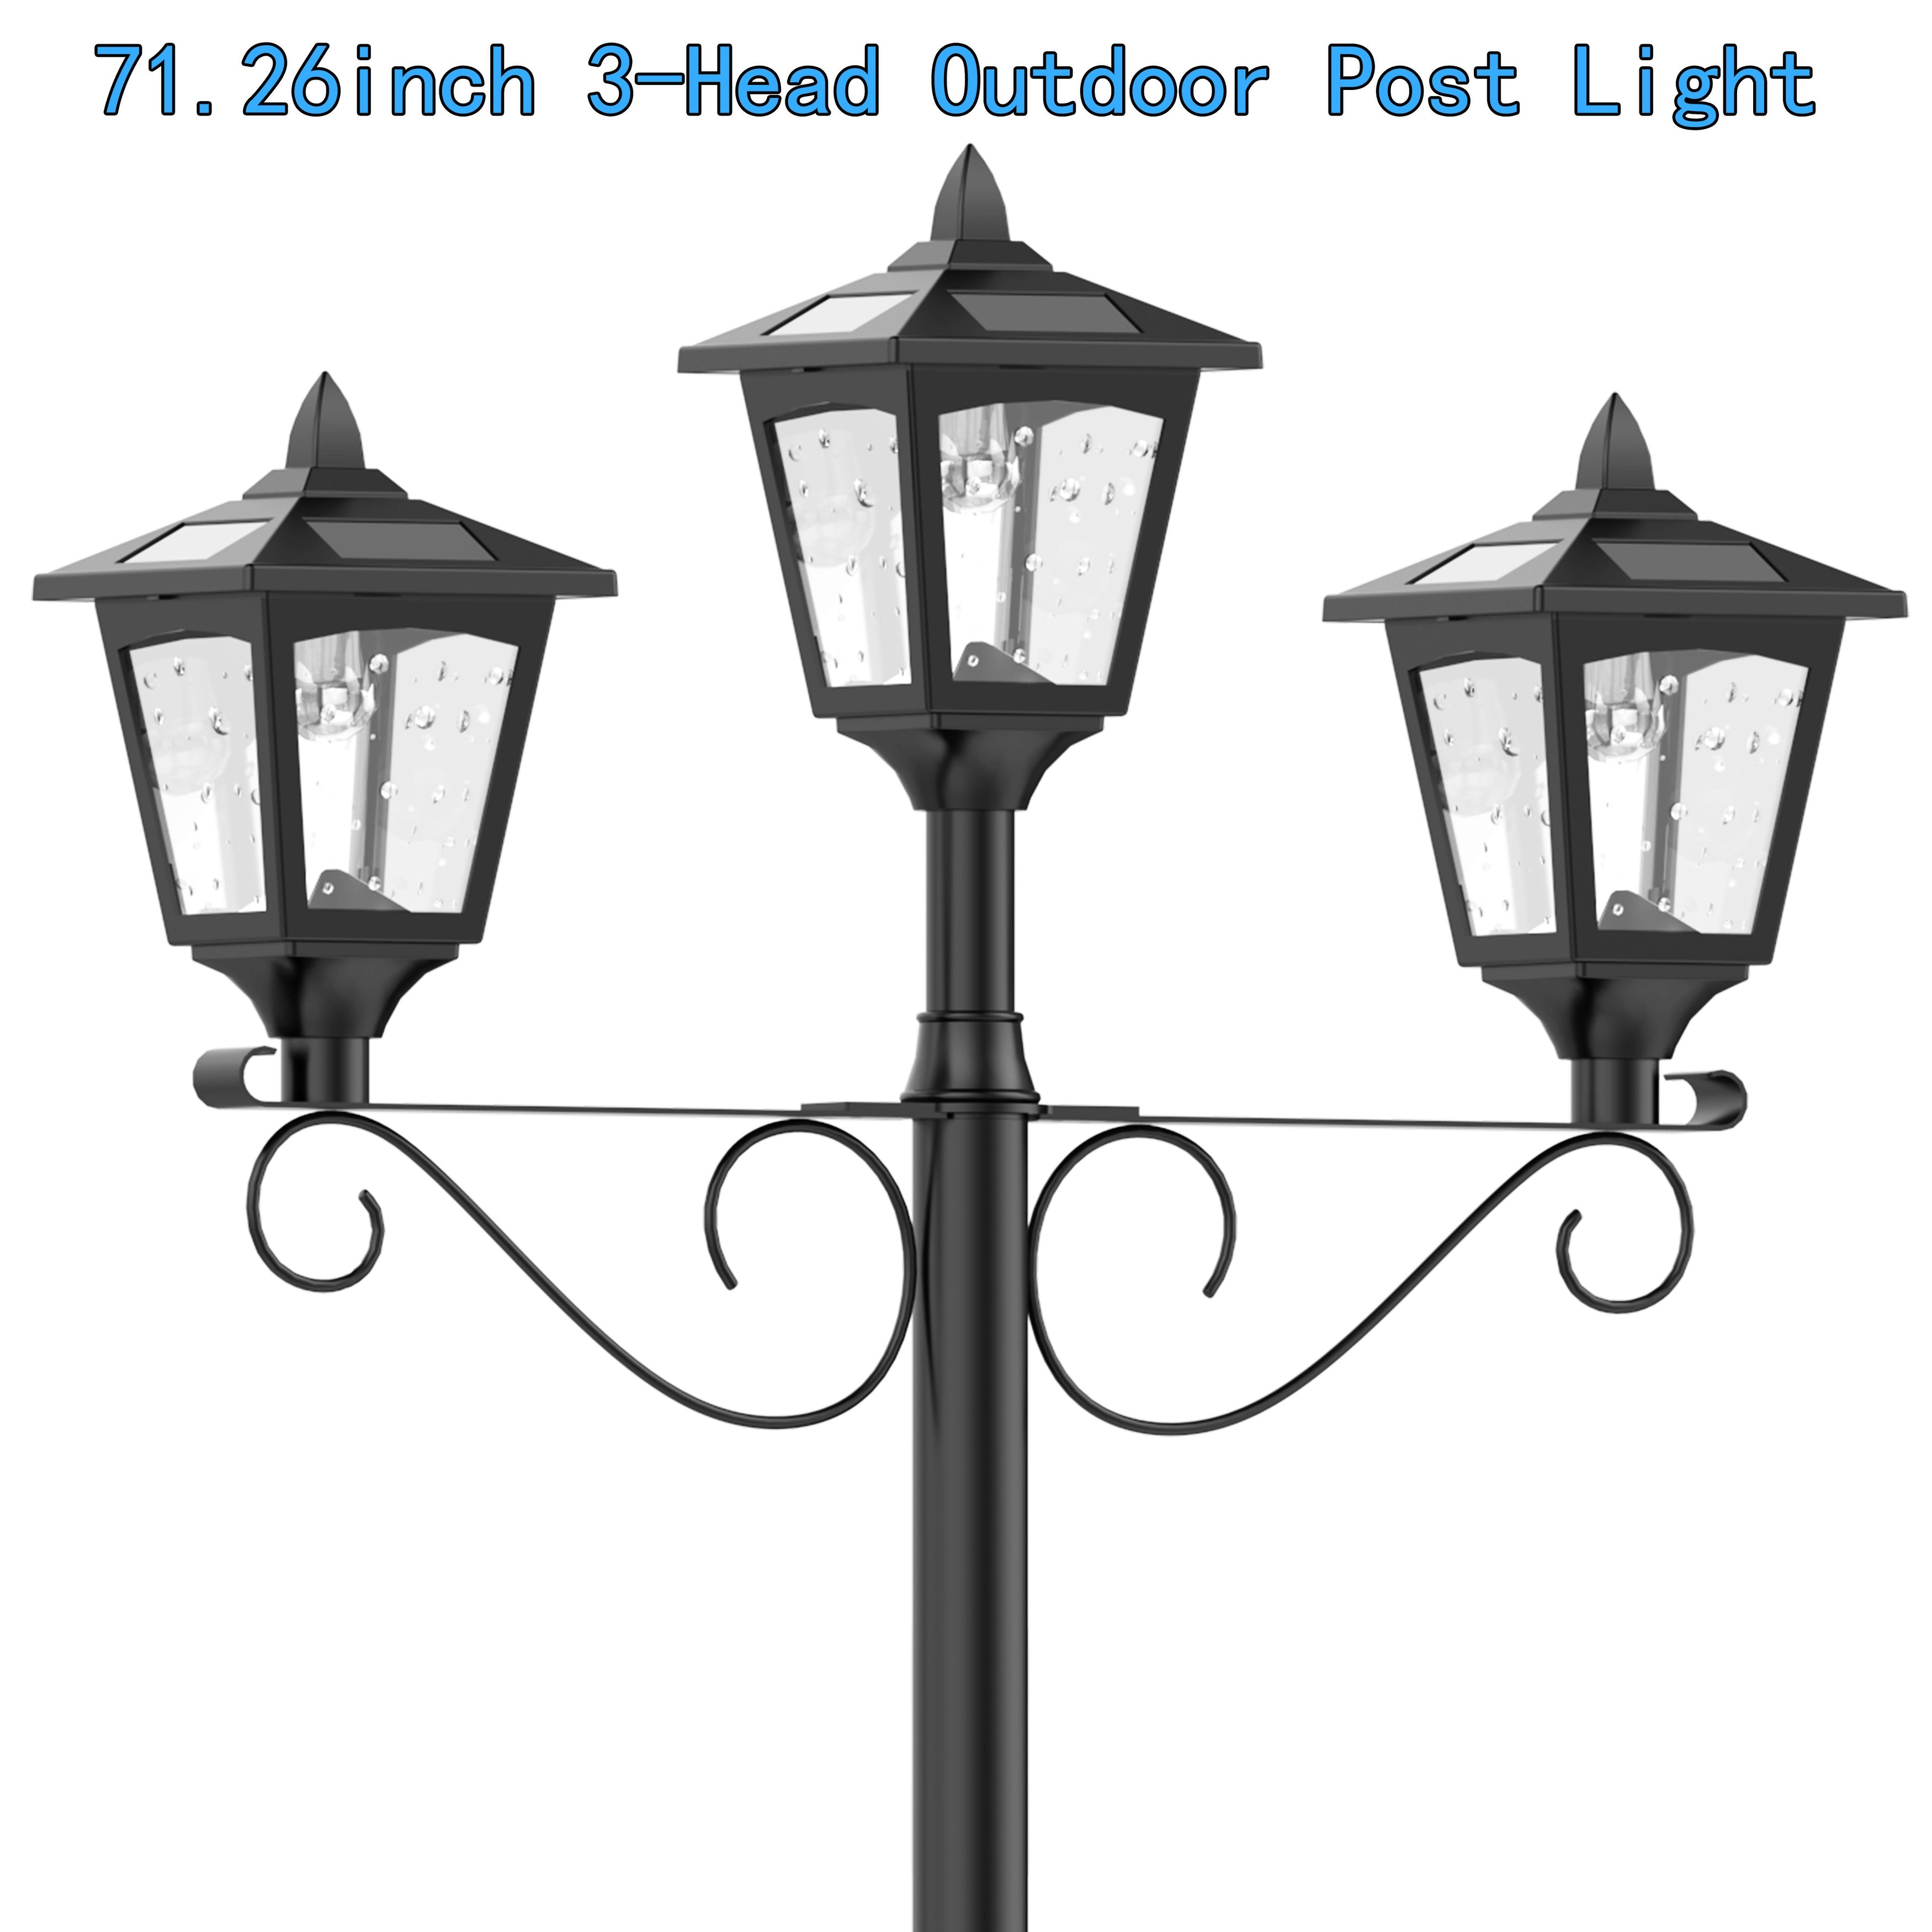 light free and lights lamp two street lighting png icons post image